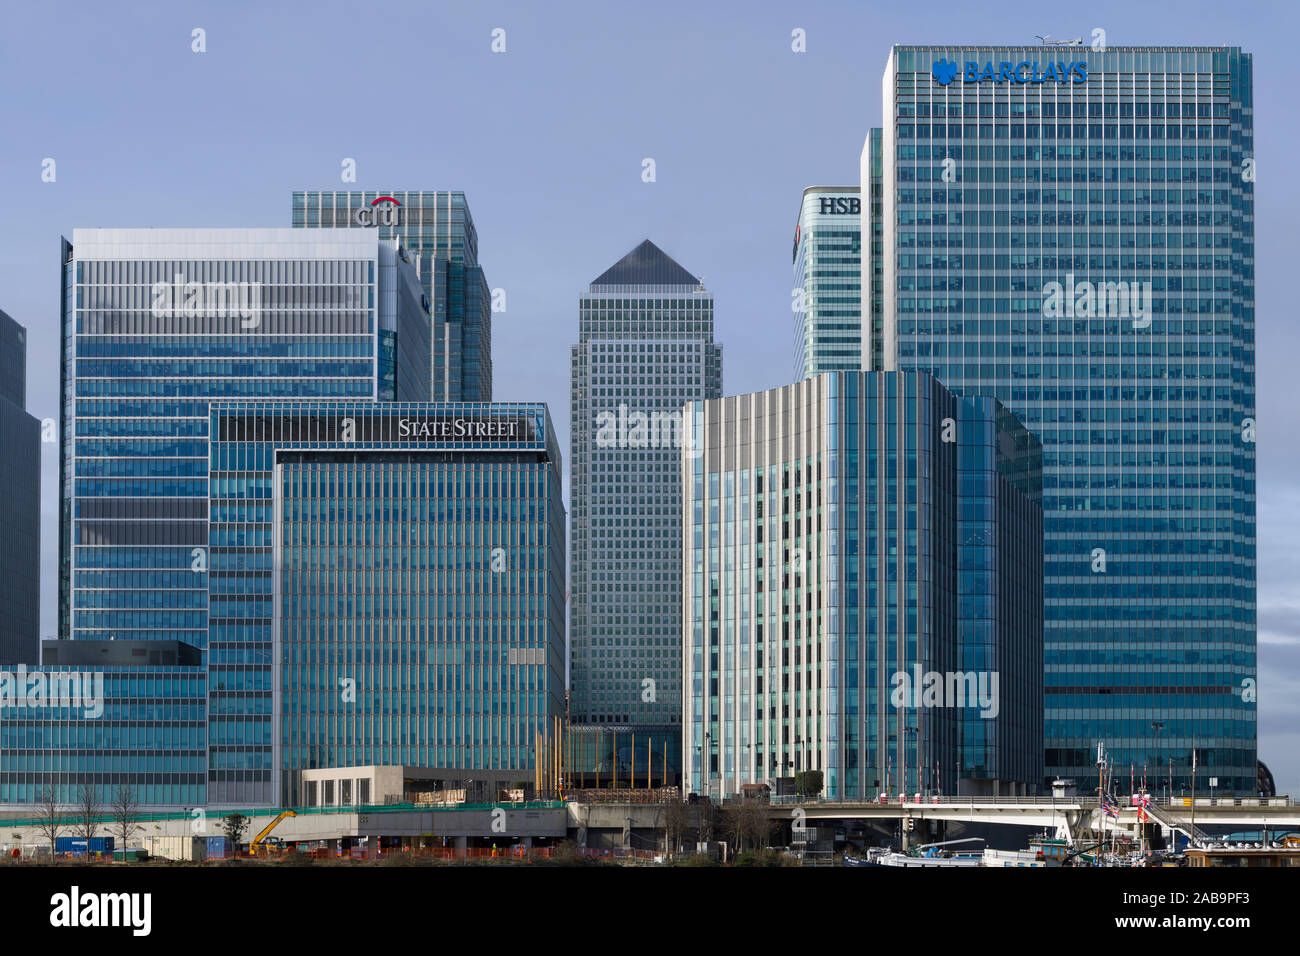 Citi bank, State Street, One Canada Square, HSBC and Barclays Bank building, Canary Wharf, Financial district, London, UK  Canary Wharf business distr Stock Photo